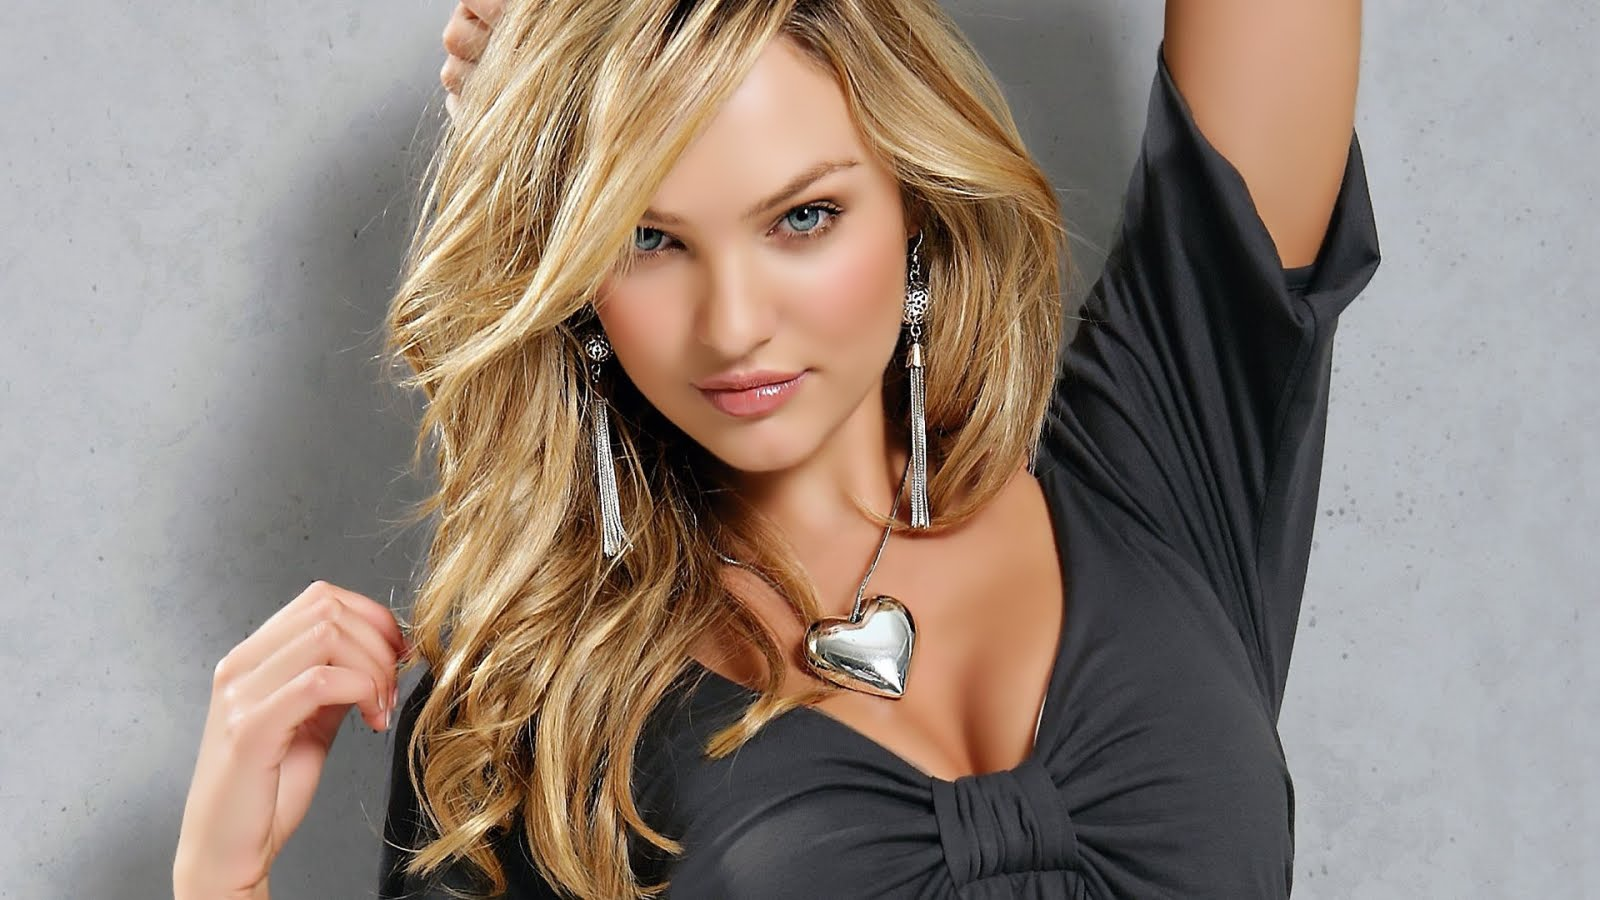 Candice Swanepoel Hd Resolution Wallpapers Free Walpaper